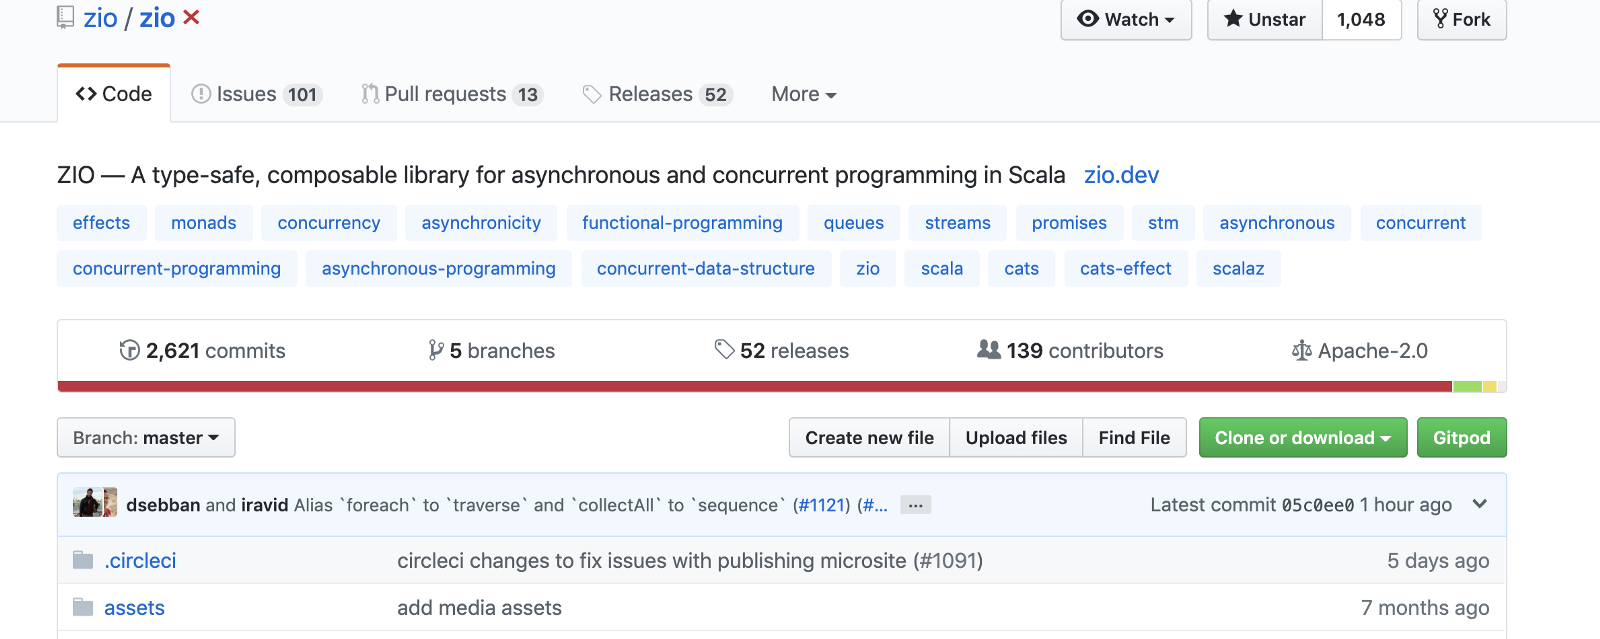 Merging Pull Requests